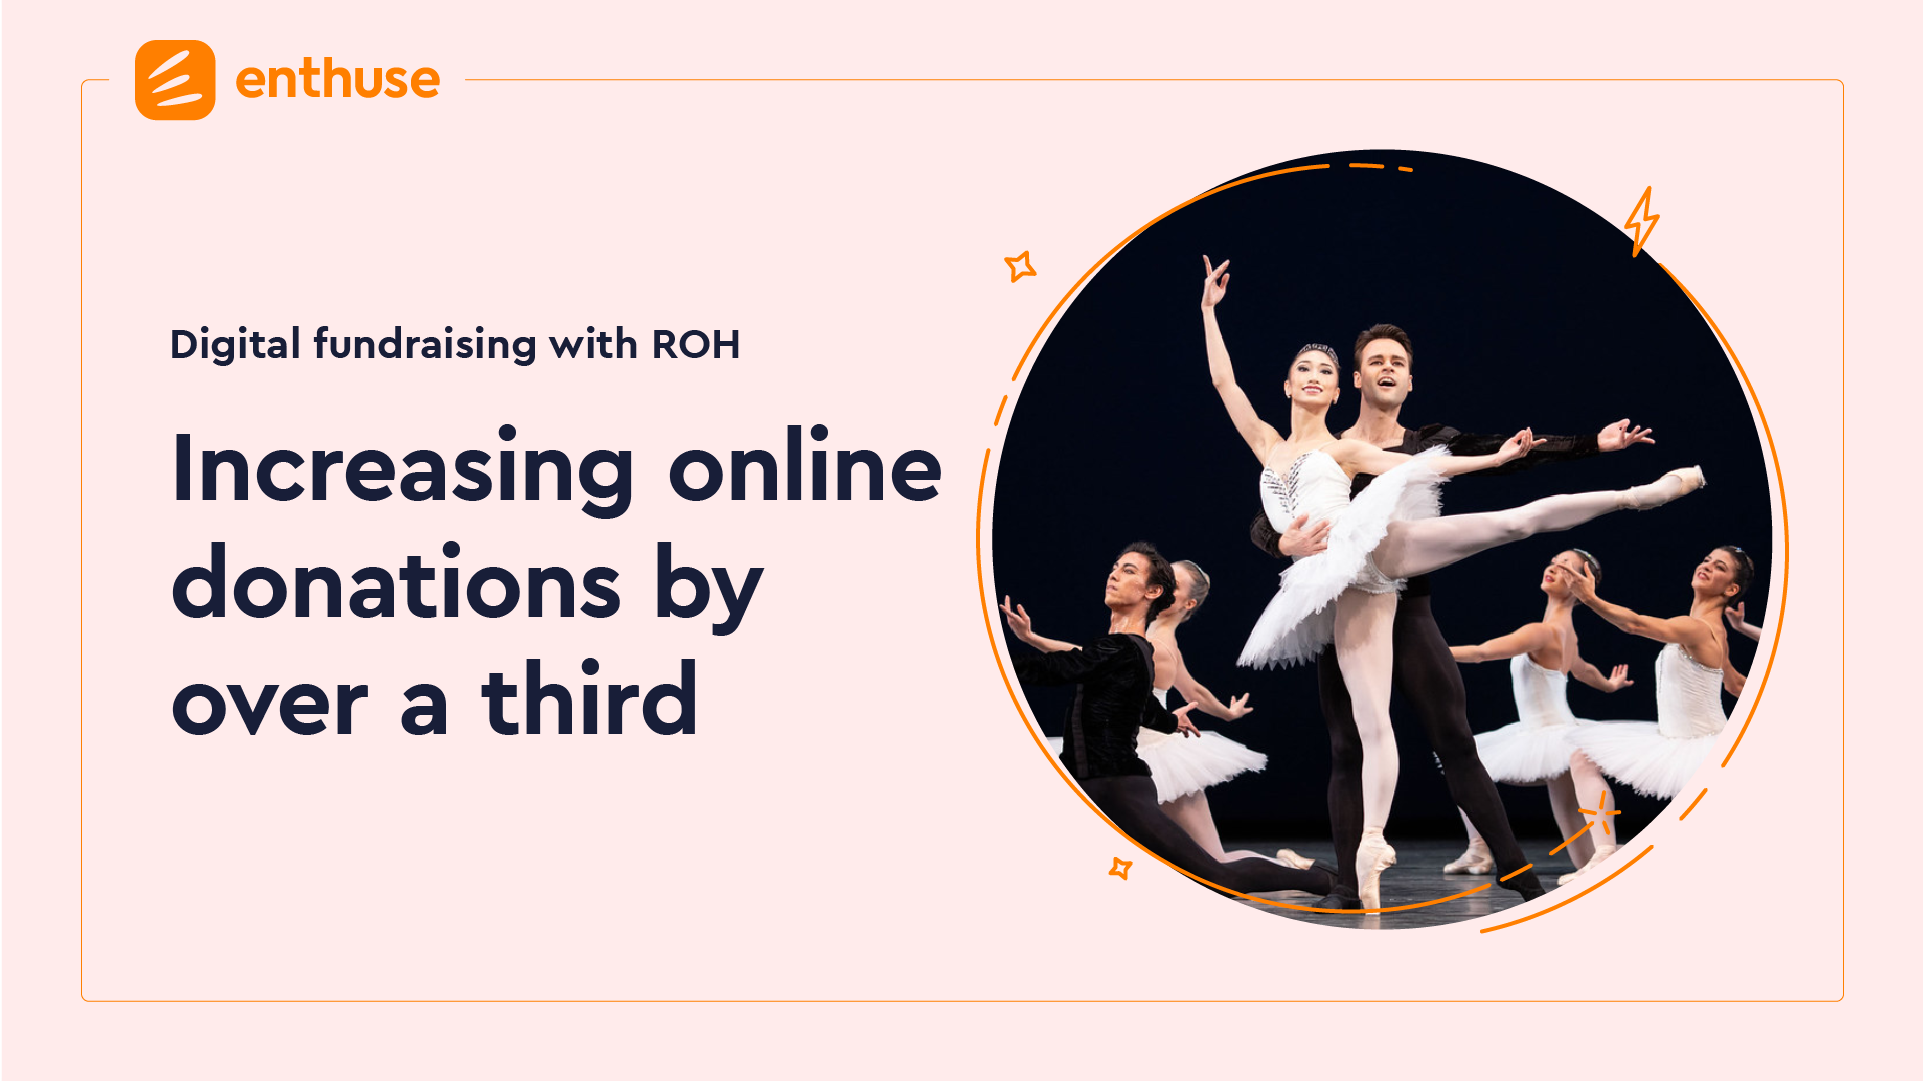 How the Royal Opera House increased online donations by over a third